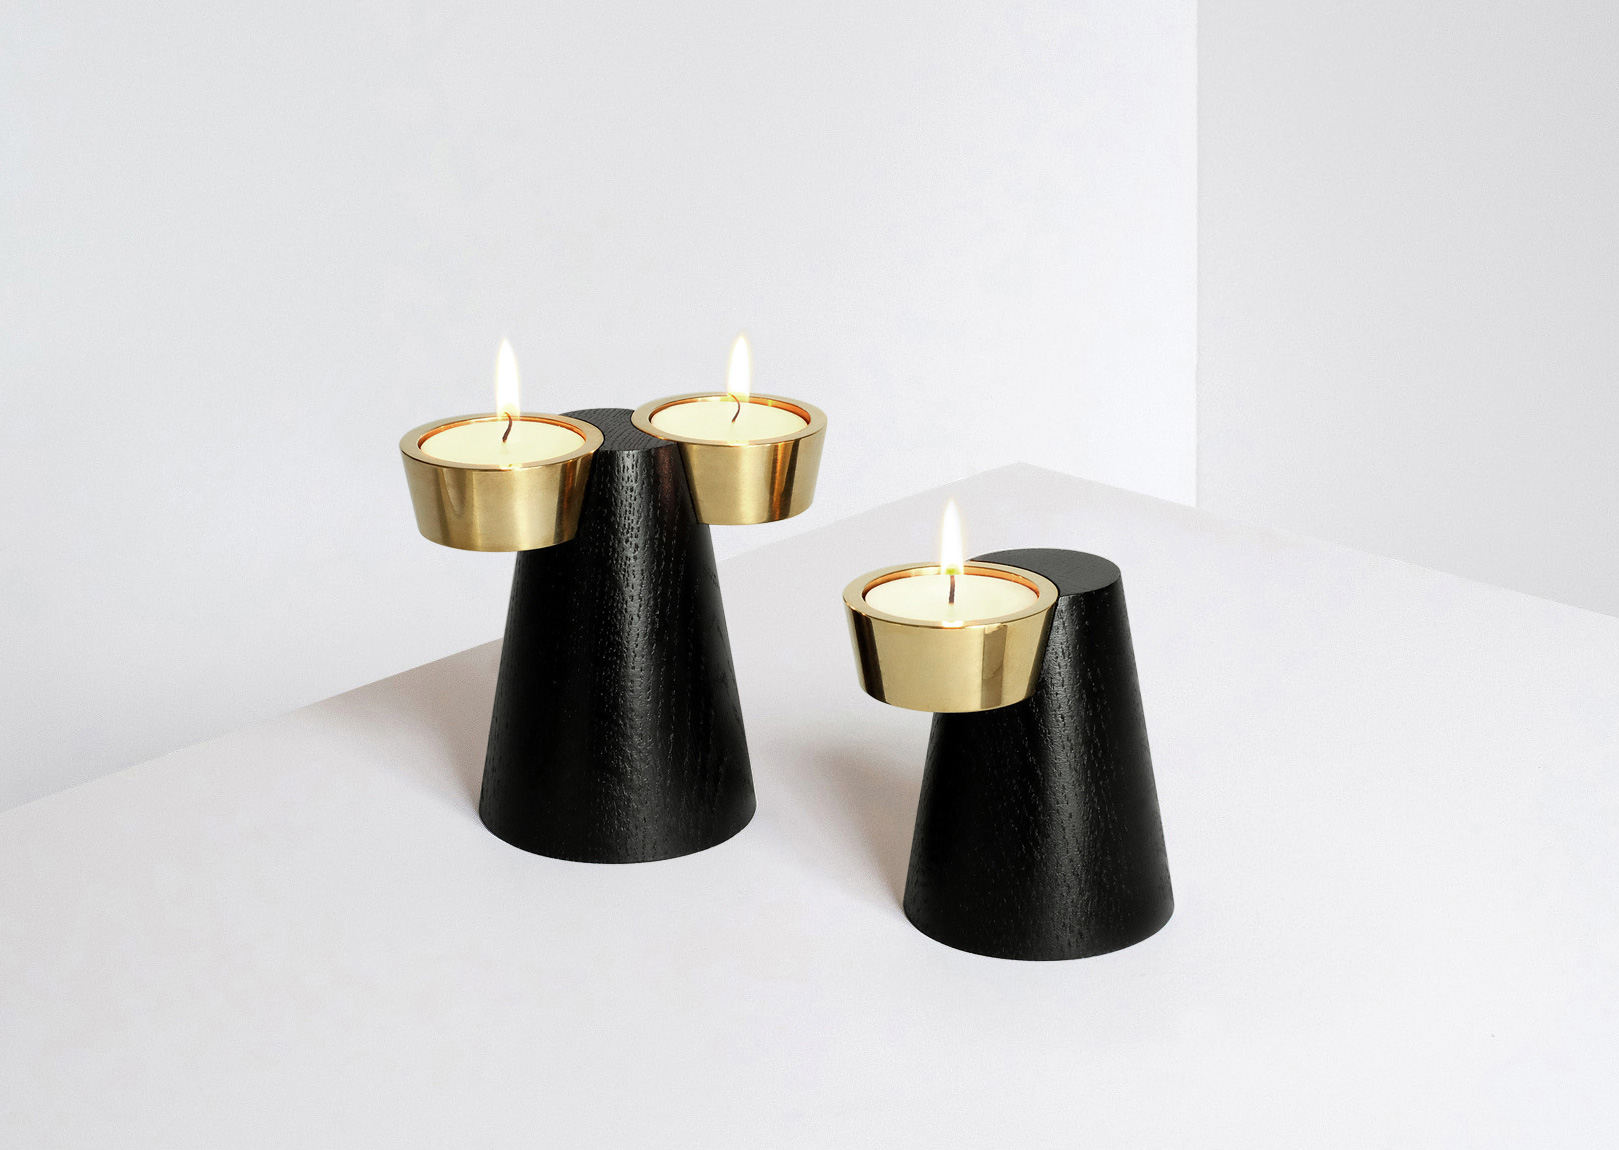 Black-group-Faro-CandleHolder-Caussa-Kowalewski-3